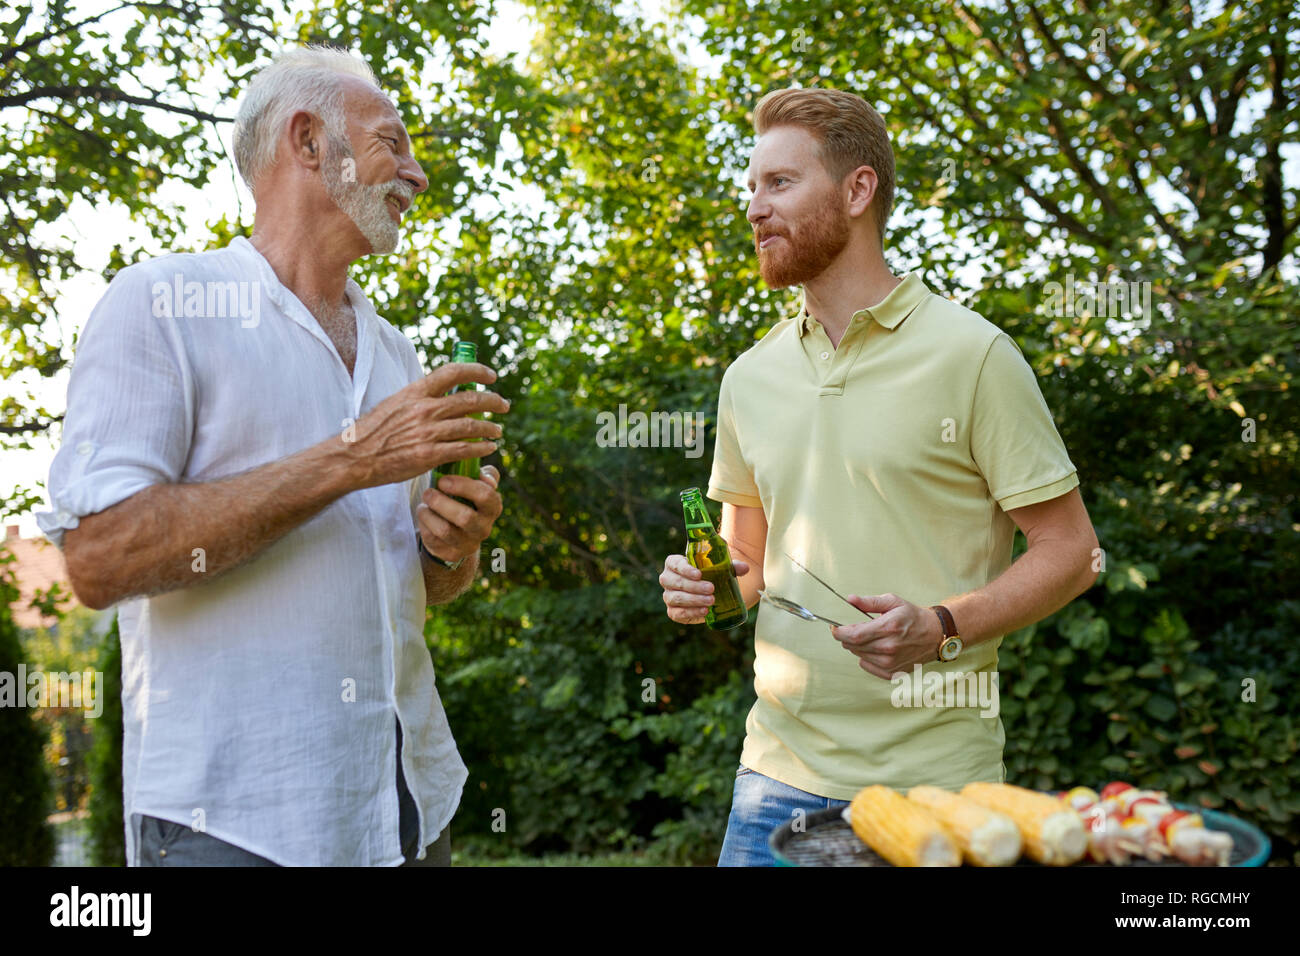 Senior father and adult son having a barbecue and talking in garden - Stock Image